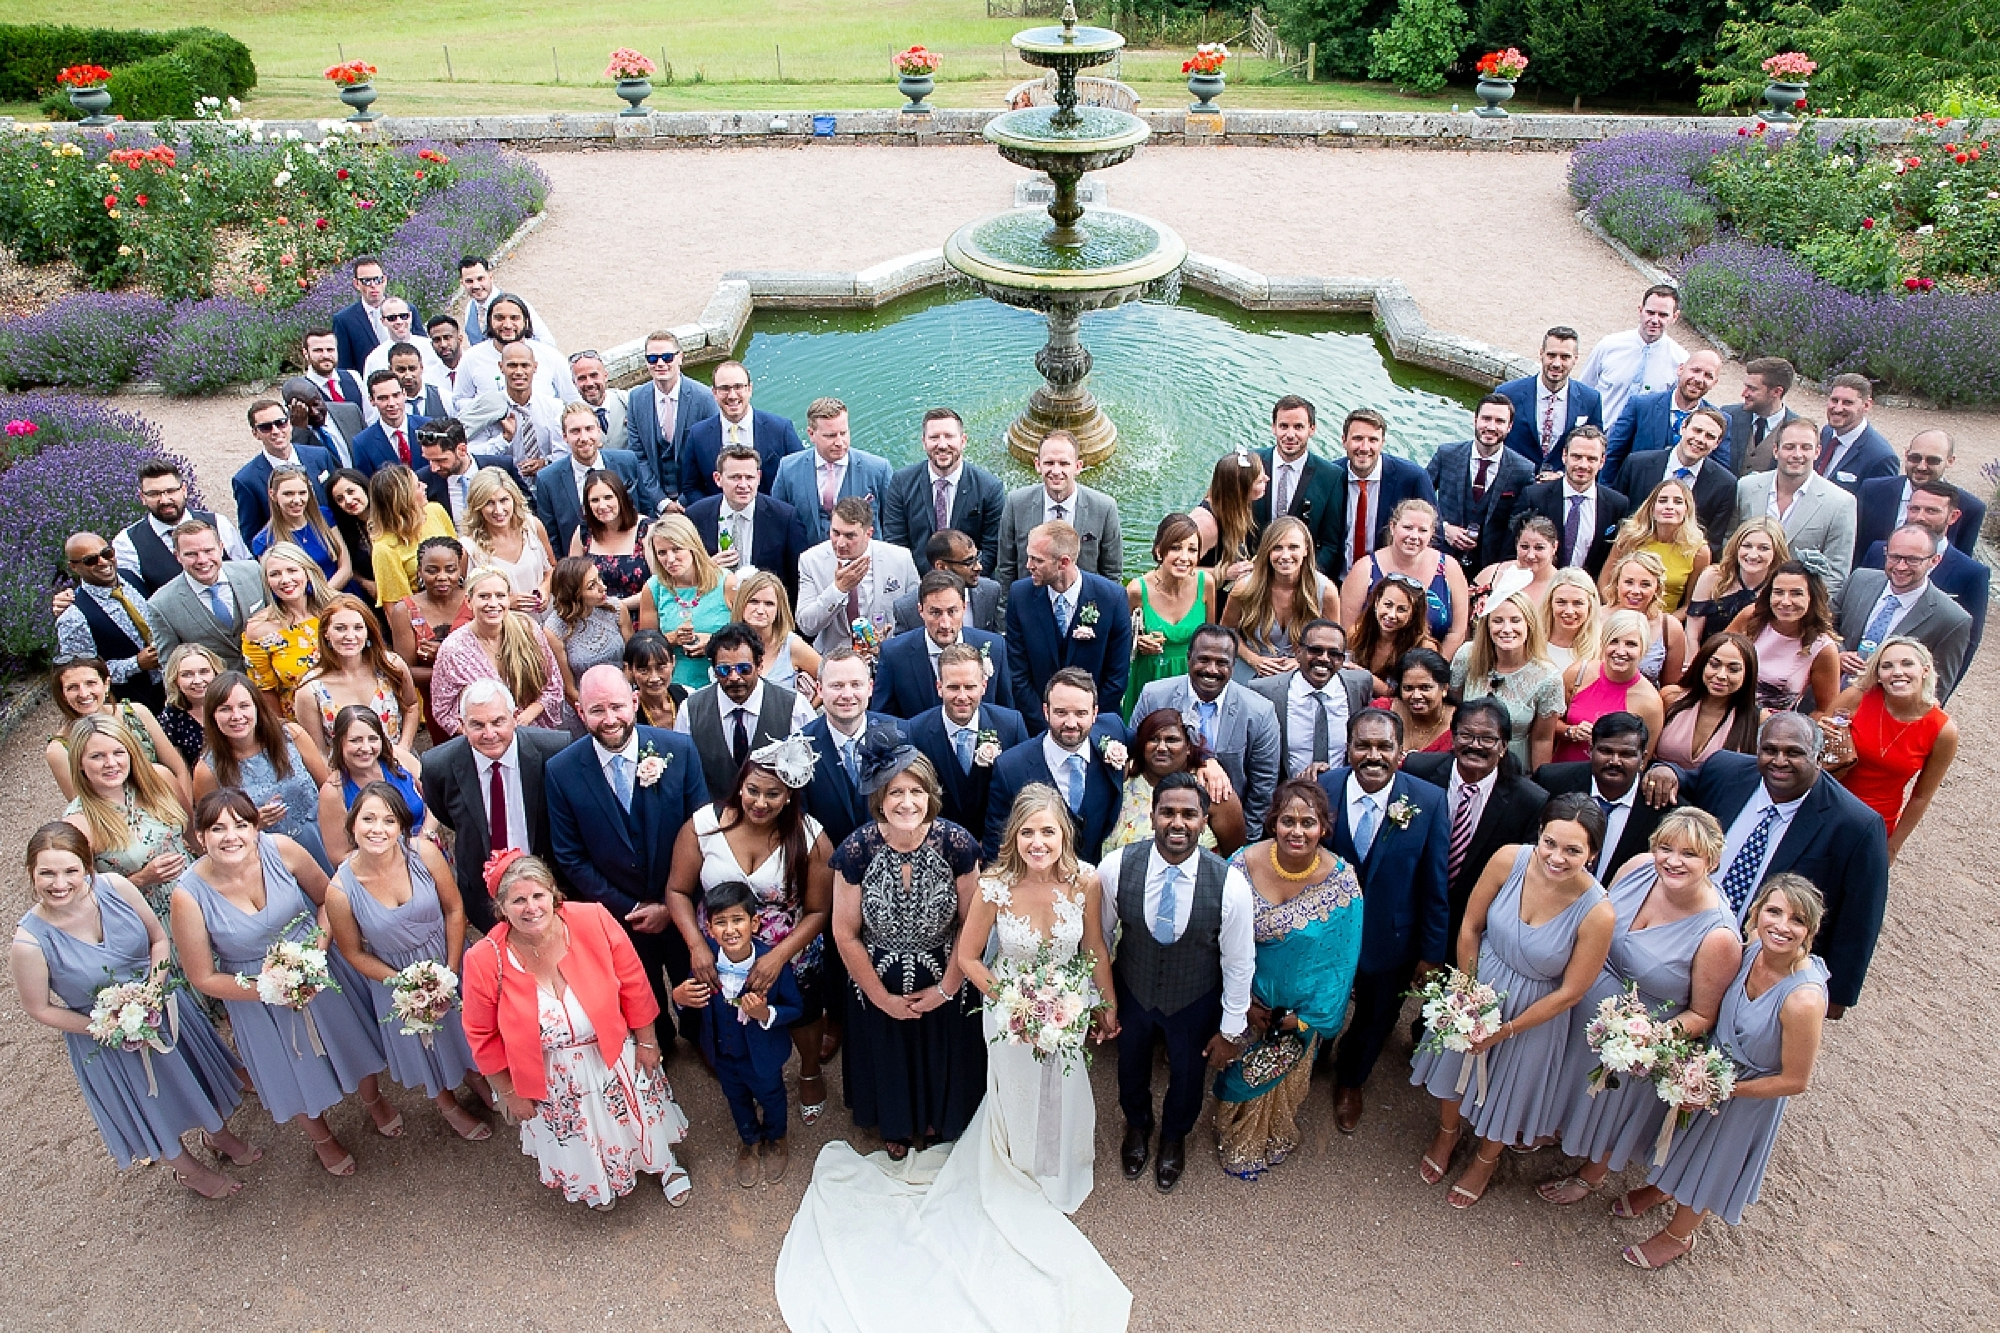 Group shot of wedding at Pynes House in Devon from above as guests surround water fountain